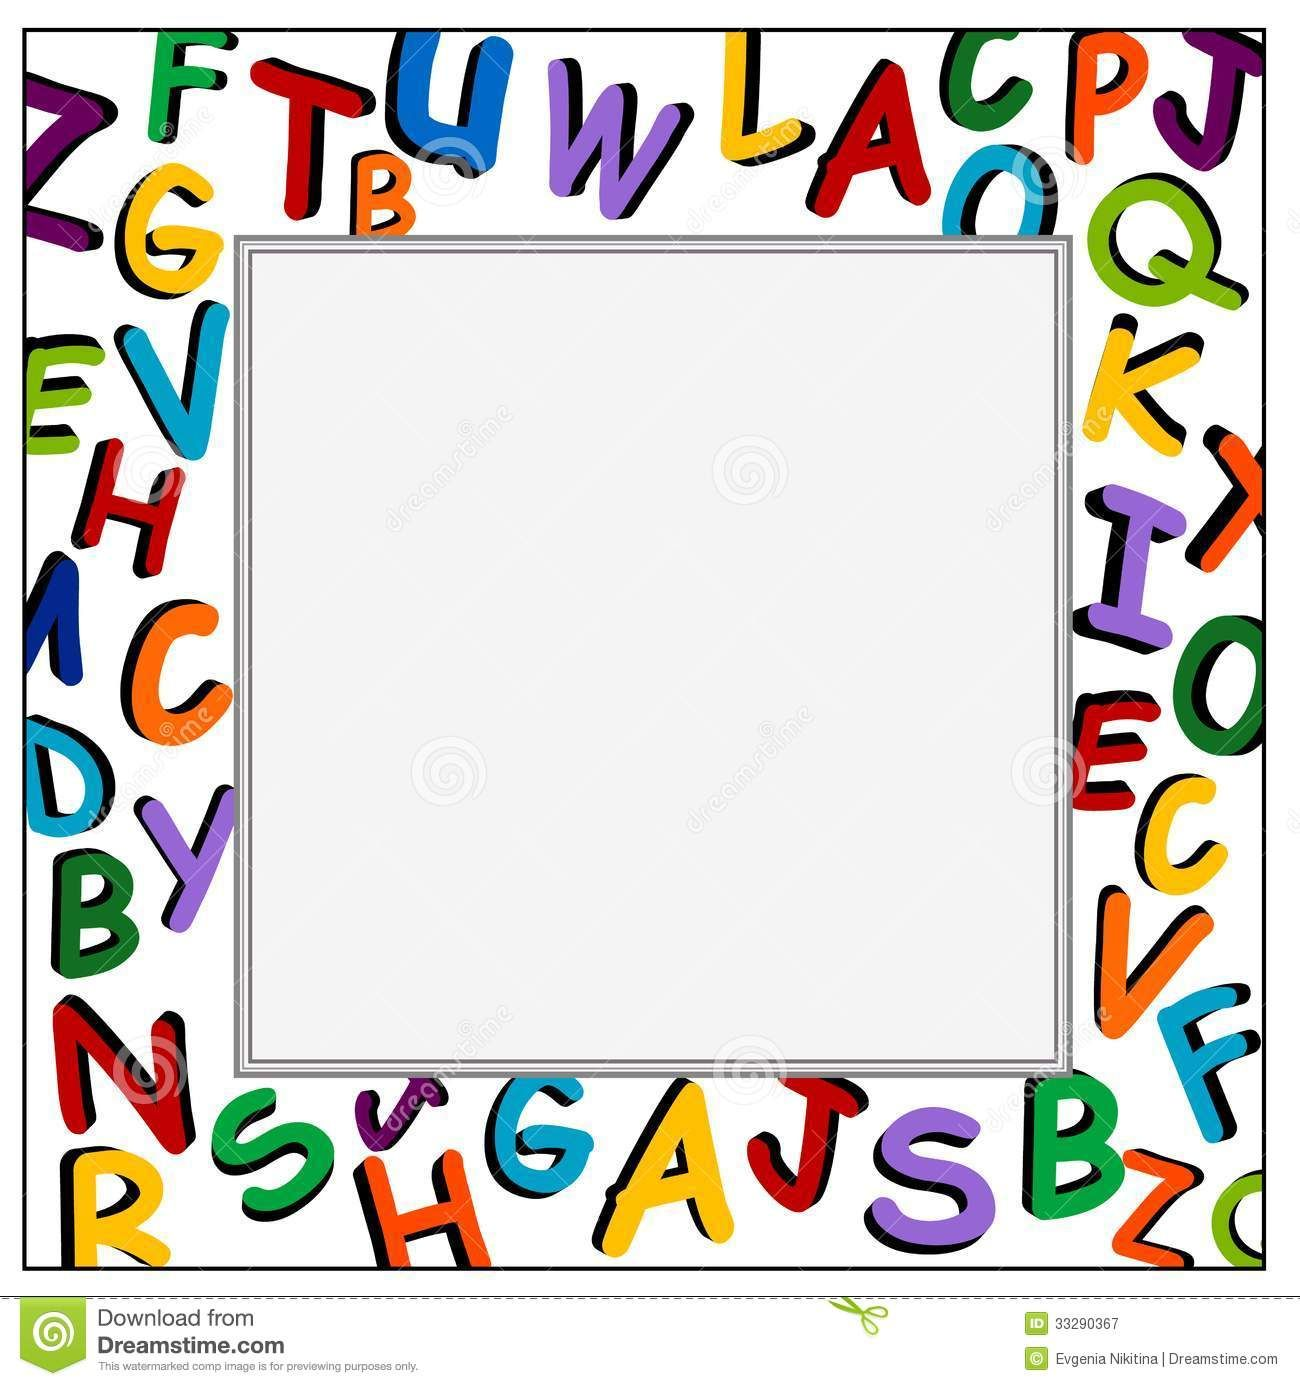 Worksheet Clipart For Teachers 10 Free Cliparts